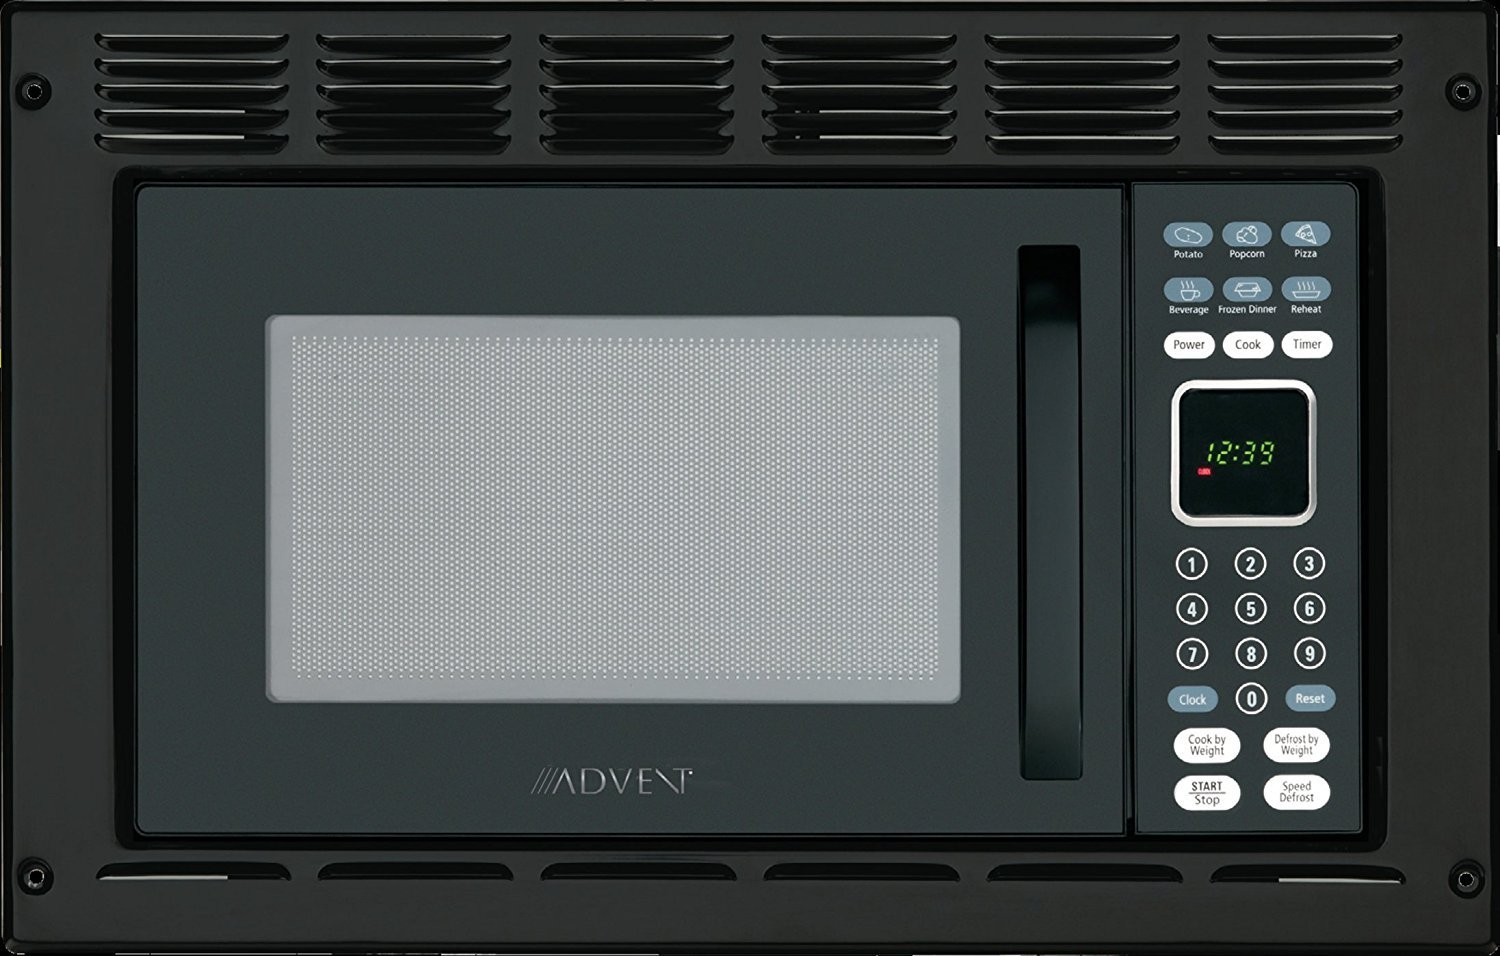 Advent MW912BWDK Black Built-in Microwave Oven with Wide Trim Kit PMWTRIM, Specially Built for RV Recreational Vehicle, Trailer, Camper, Motor Home etc., 0.9 cu.ft. capacity, 900 watts of cooking power and 10 adjustable power levels let you boil, reheat, defrost and more, 6 pre-programmed one-touch